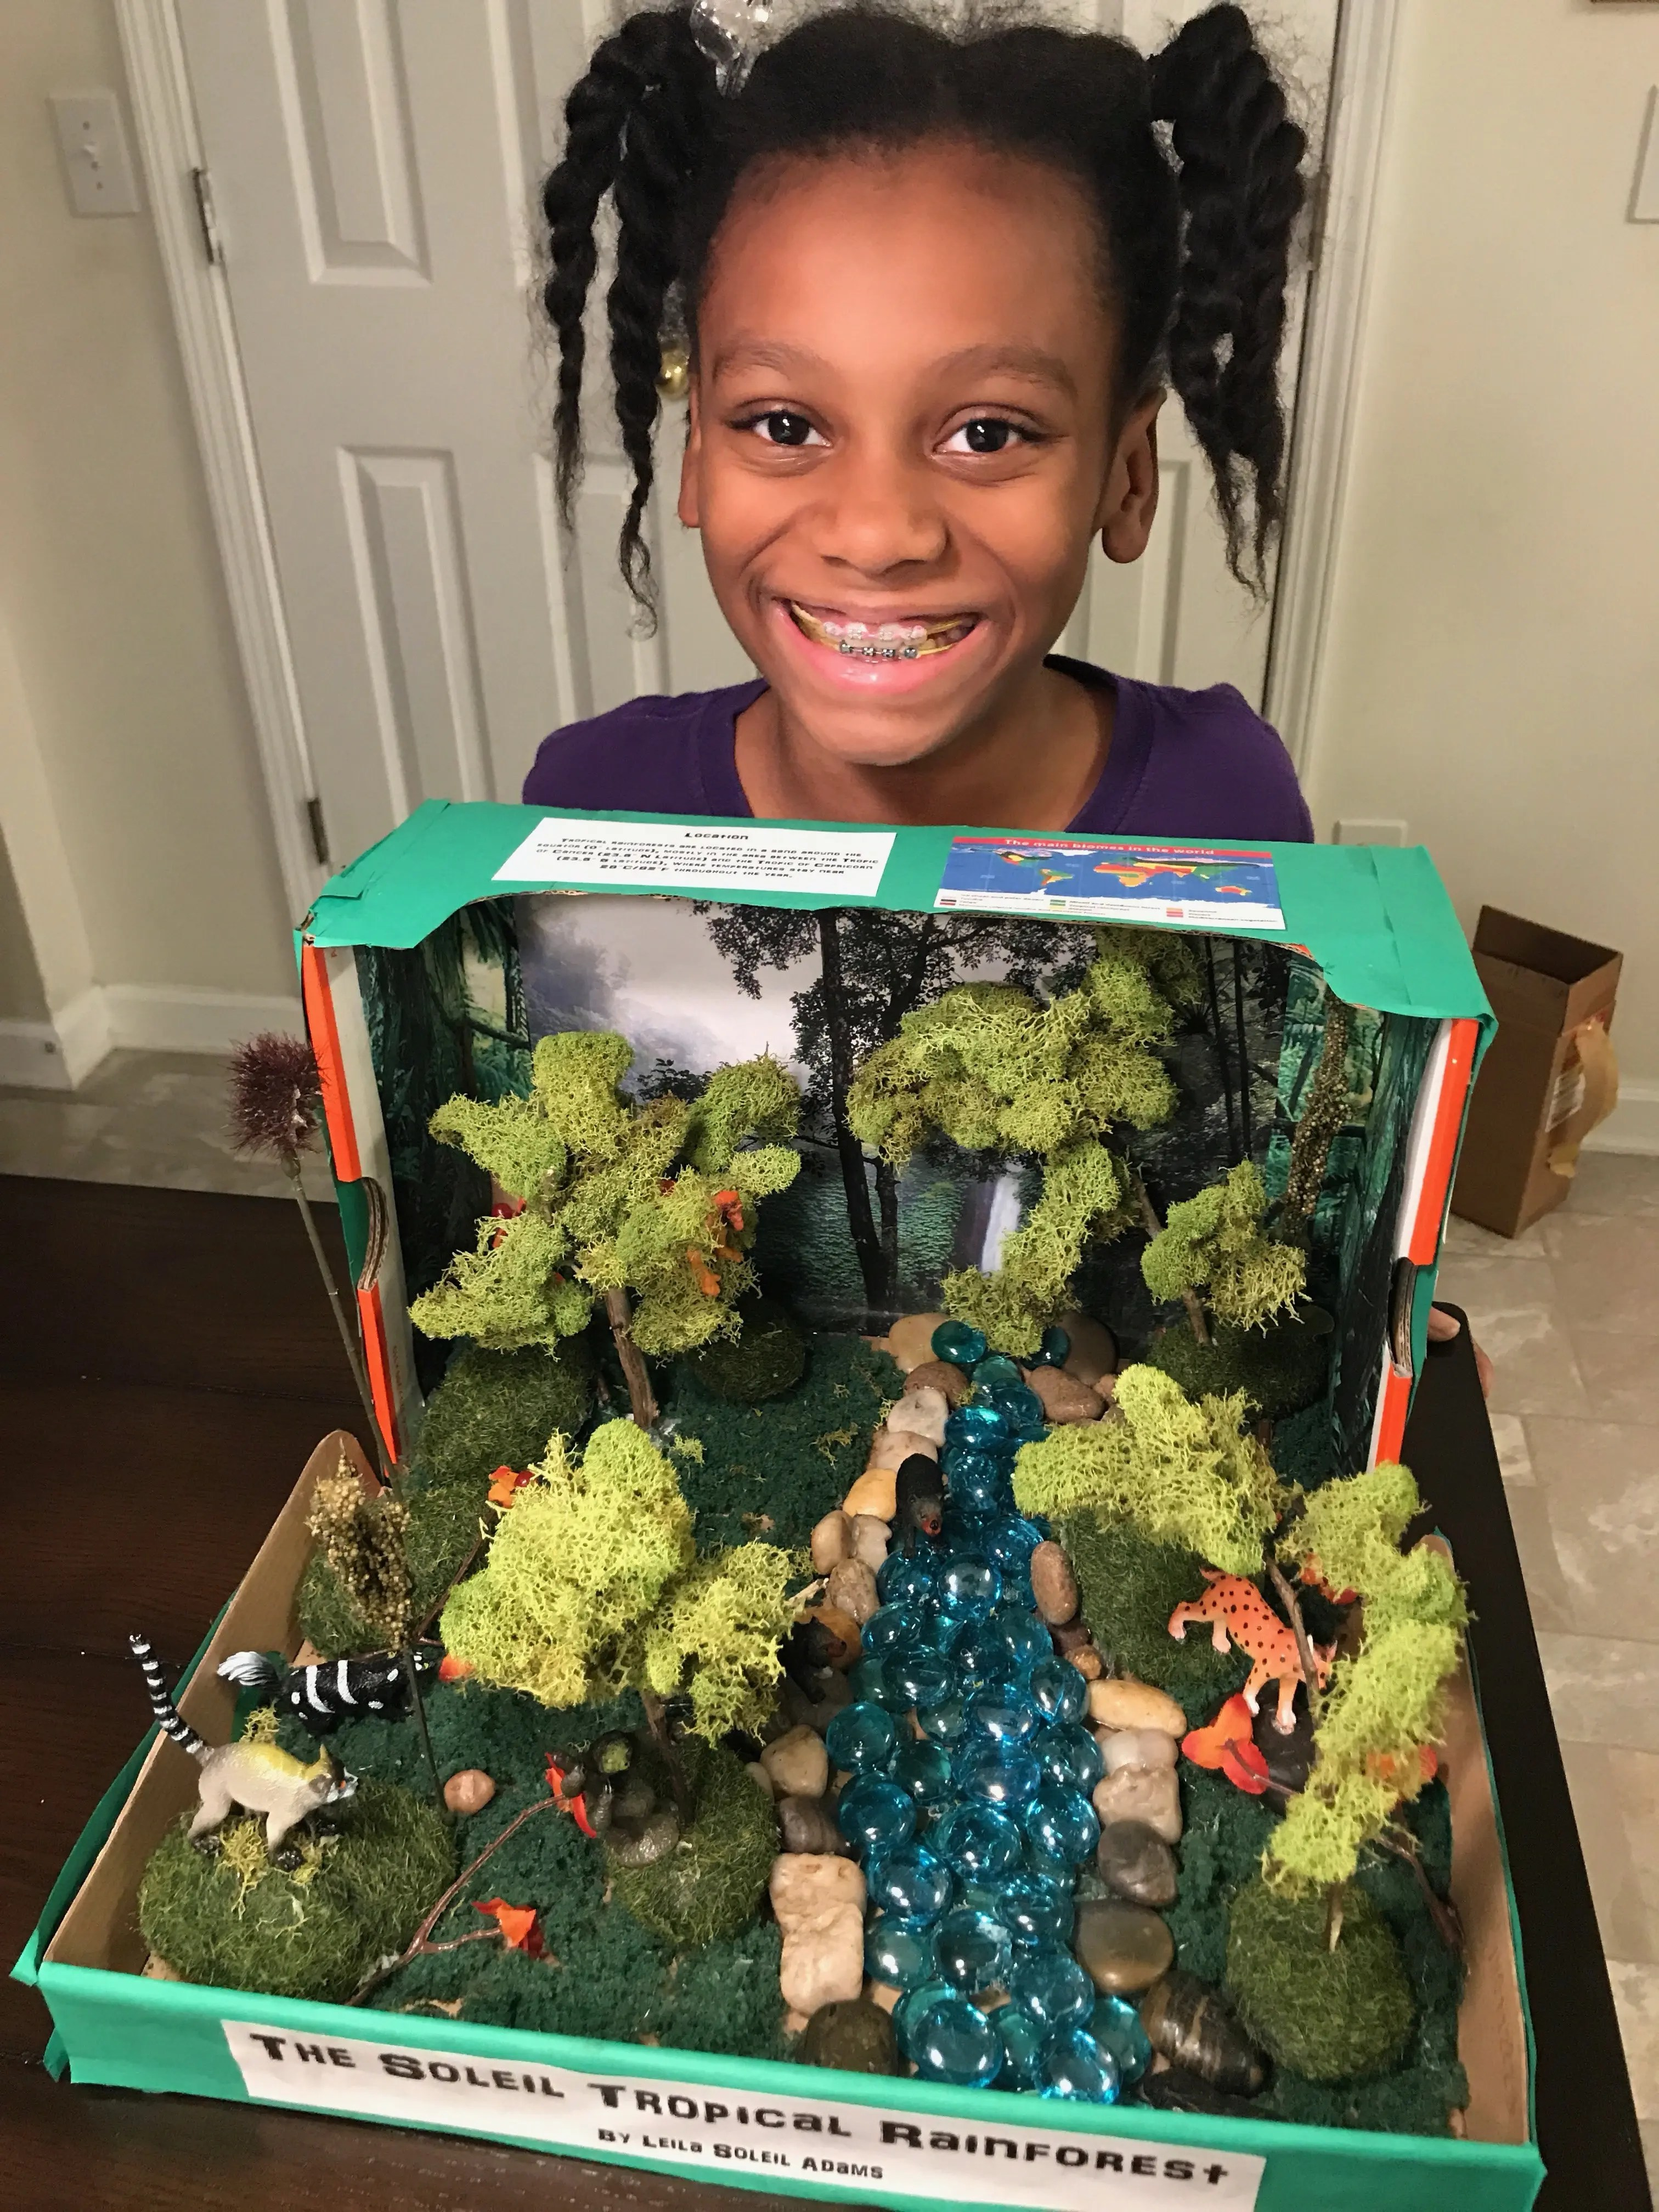 How To Make A Tropical Rainforest Diorama For Under 20